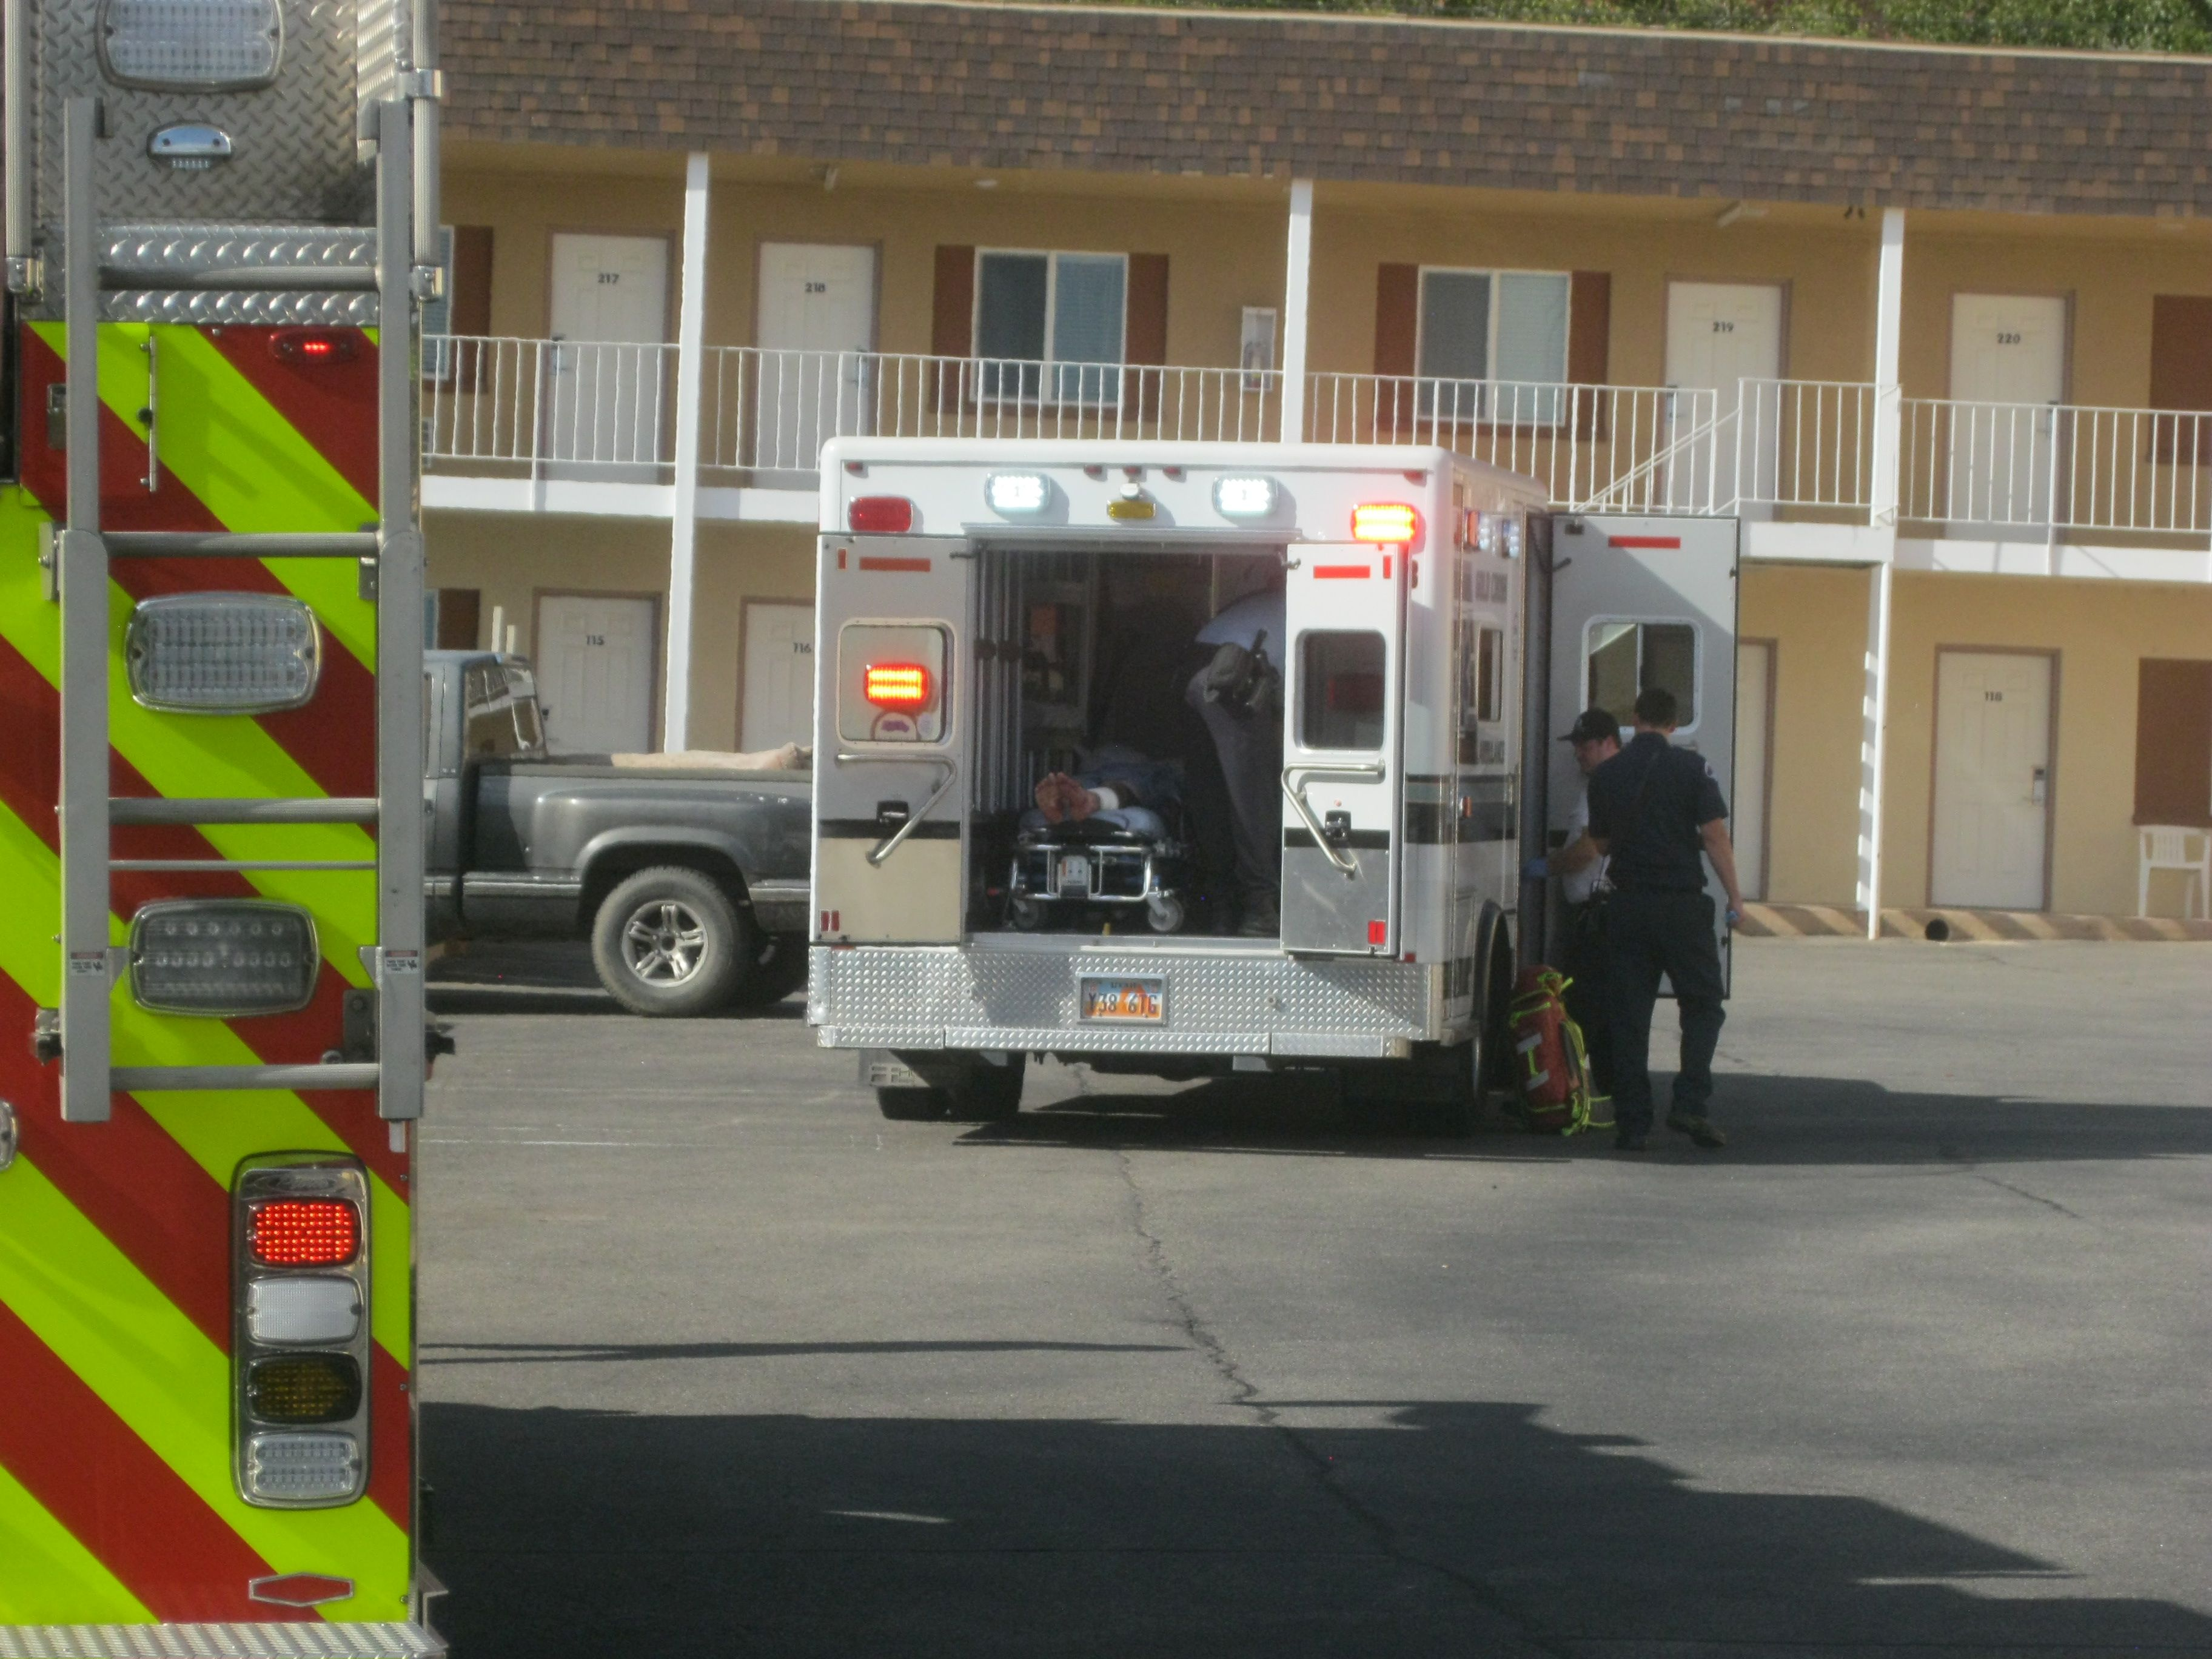 A man has been taken to Dixie Regional Medical Center in St. George after leaving his hotel room naked and bleeding. St. George, Utah, Aug. 31, 2016   Photo by Ric Wayman, St. George News